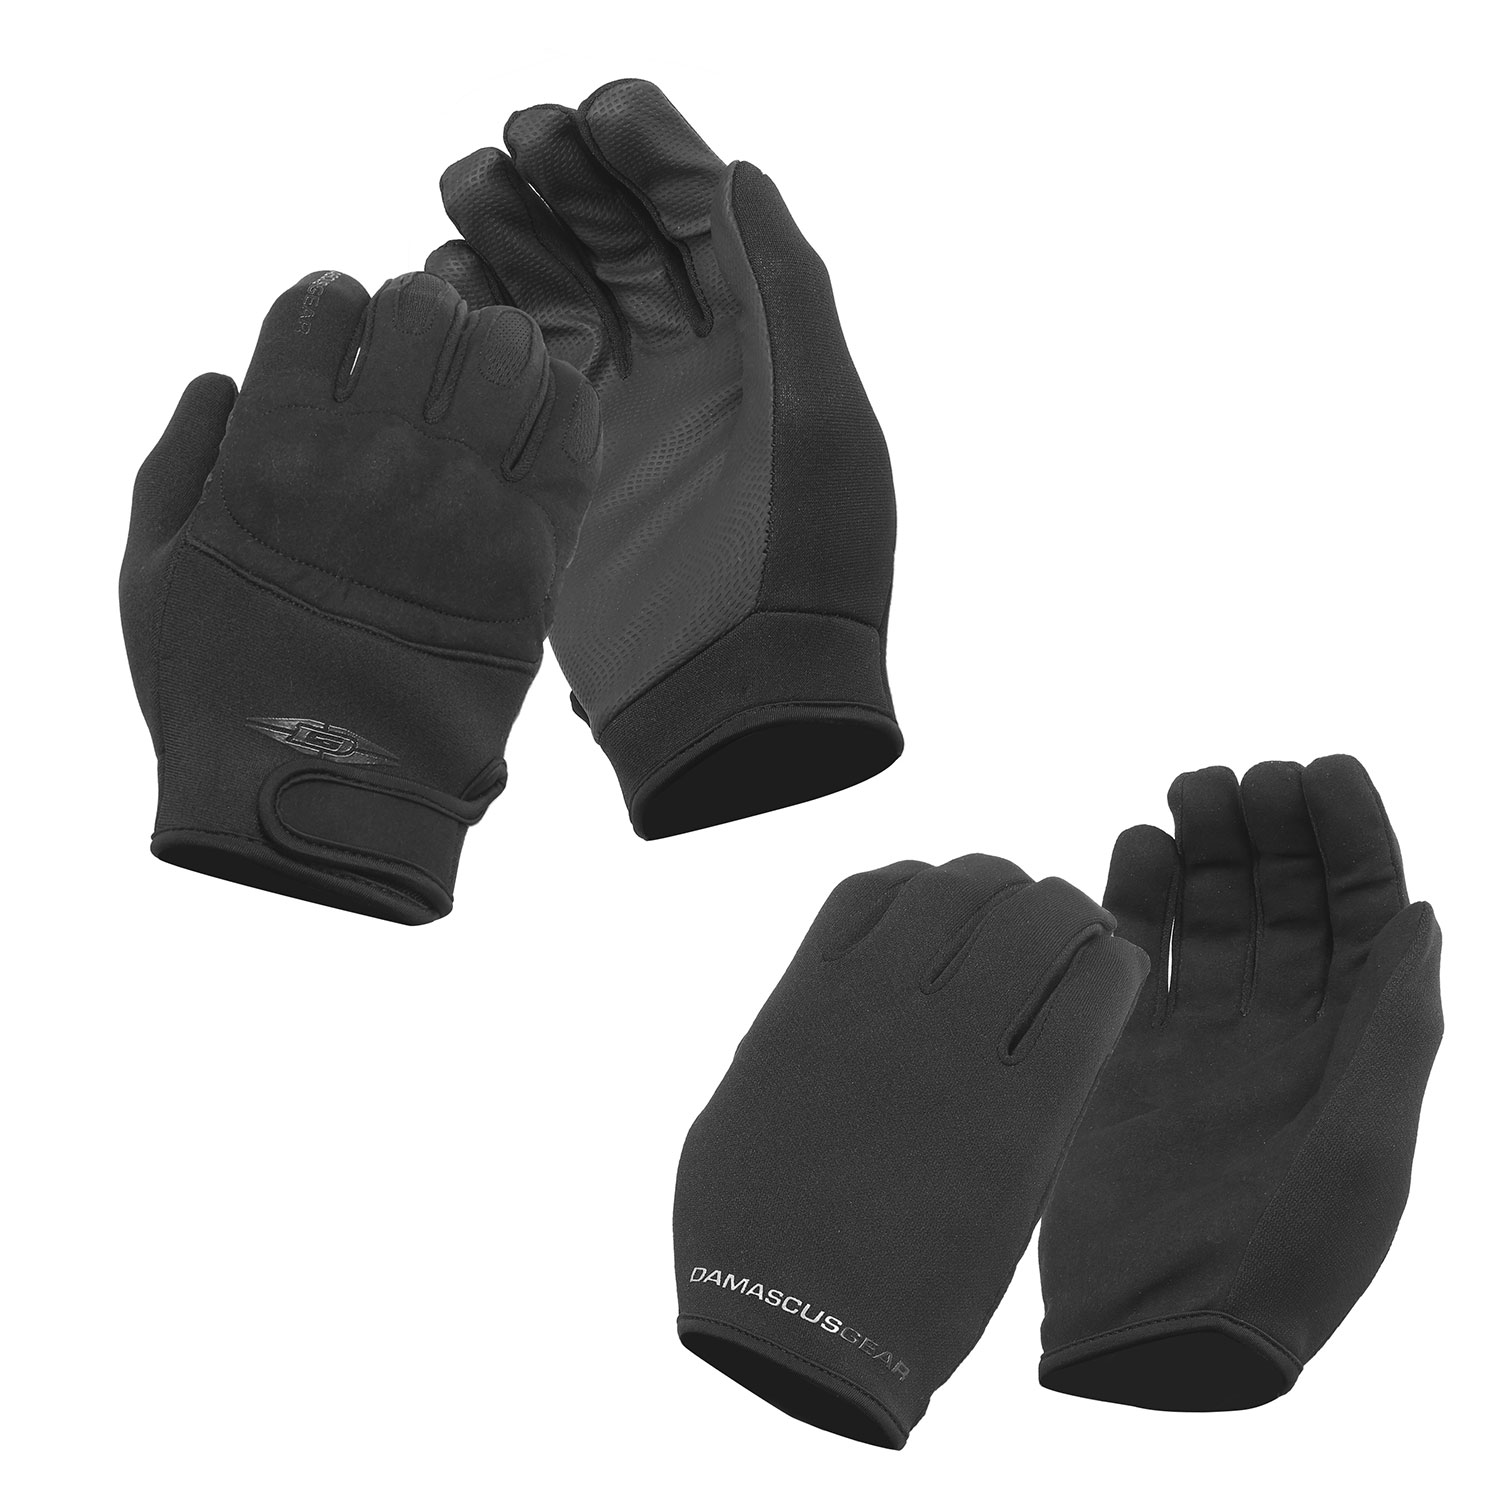 Damascus Tactical Gloves Combo Pack